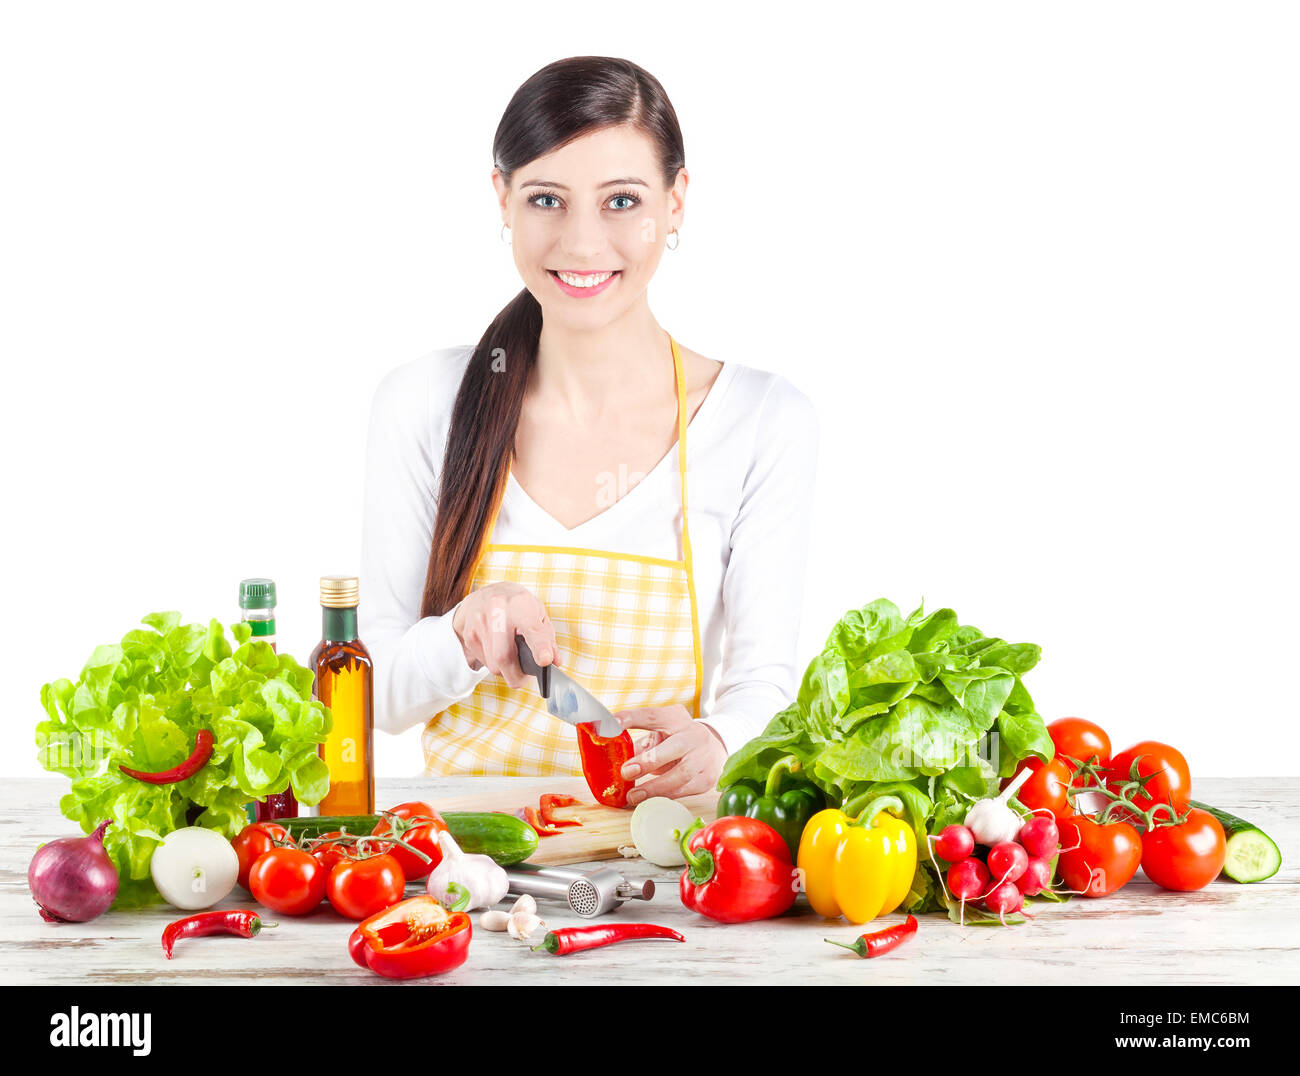 Smiling woman preparing salad. Healthy food and diet concept. Isolated on white. - Stock Image